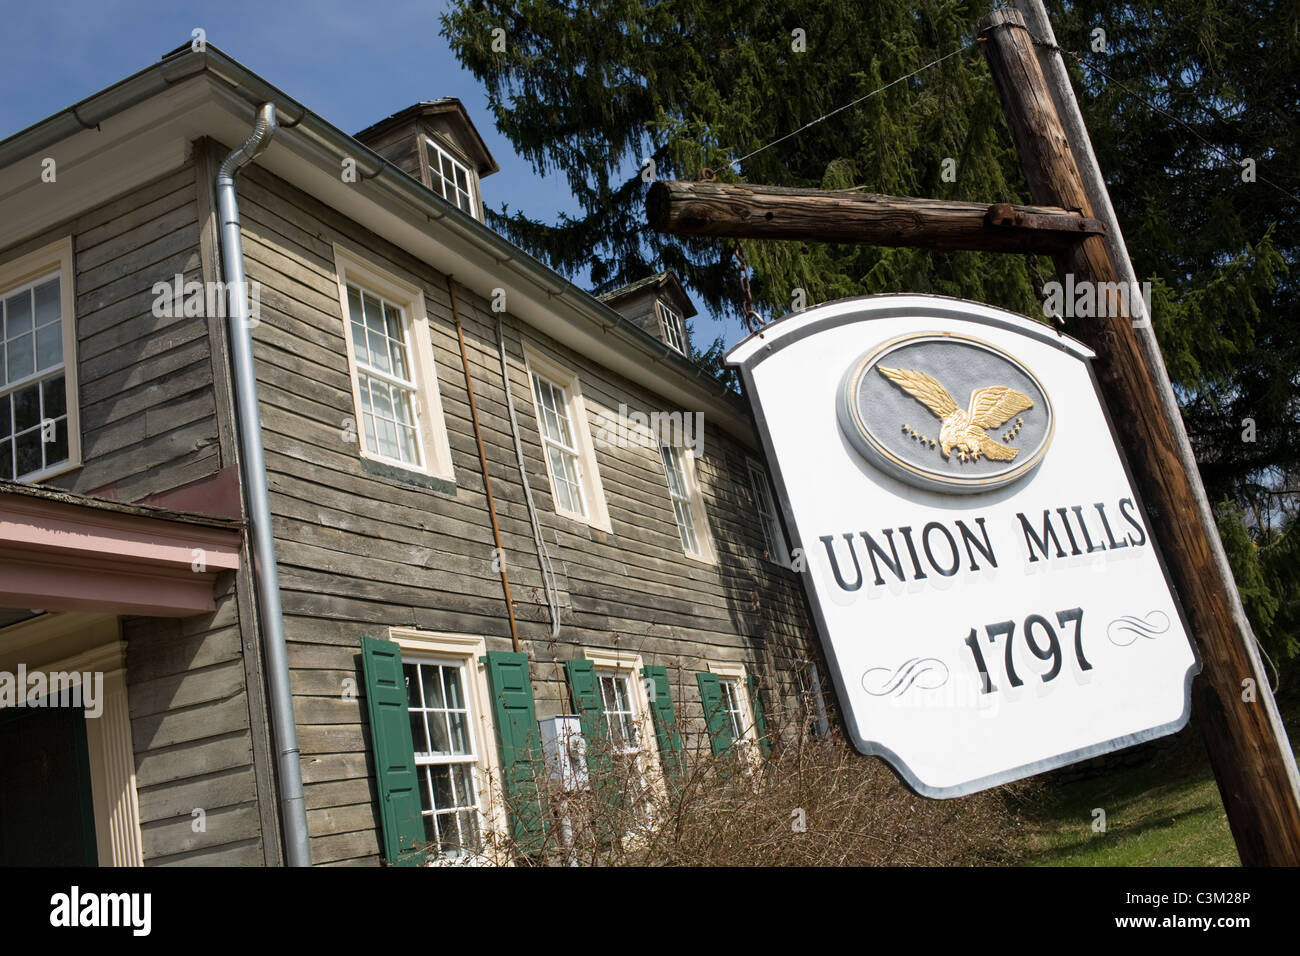 Union Mills, Carroll County, Maryland, where Confederate Troops stayed on their way to Gettysburg - Stock Image